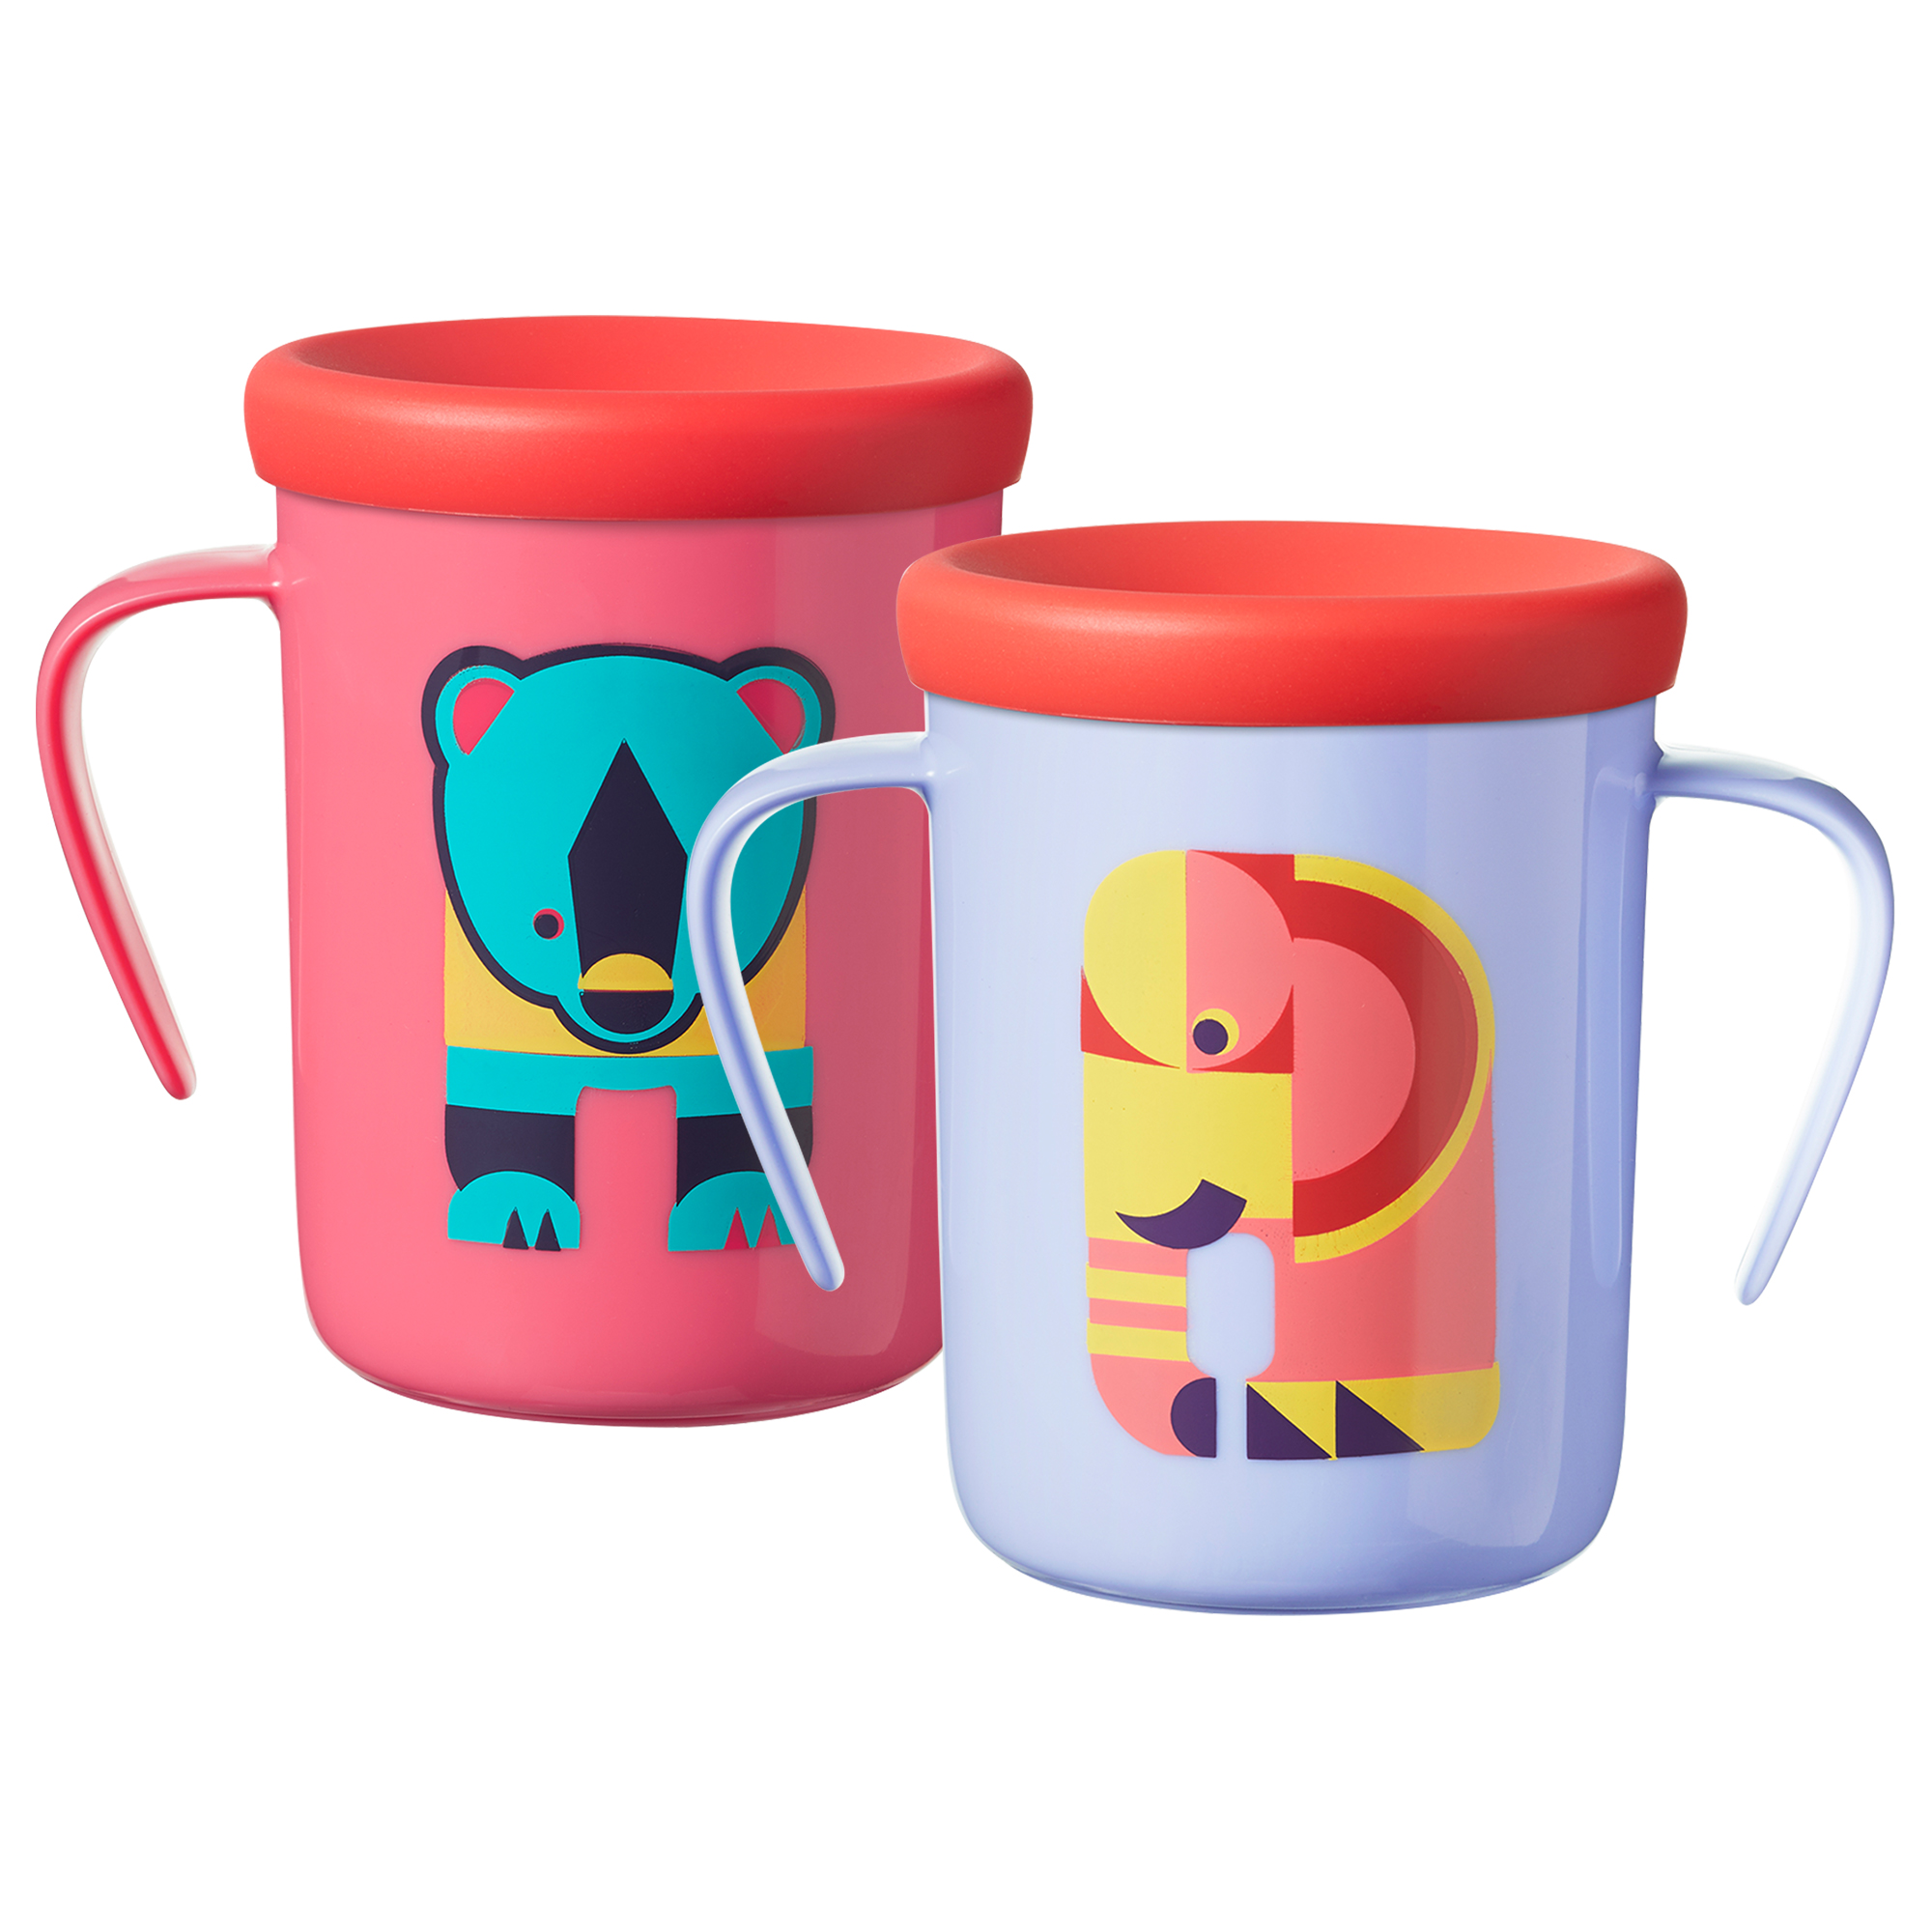 Tommee Tippee Easiflow 360� Spill-Proof Trainer Cup with Travel Lid, Elephant & Bear � 7oz, 6+ months, 2pk by Tommee Tippee